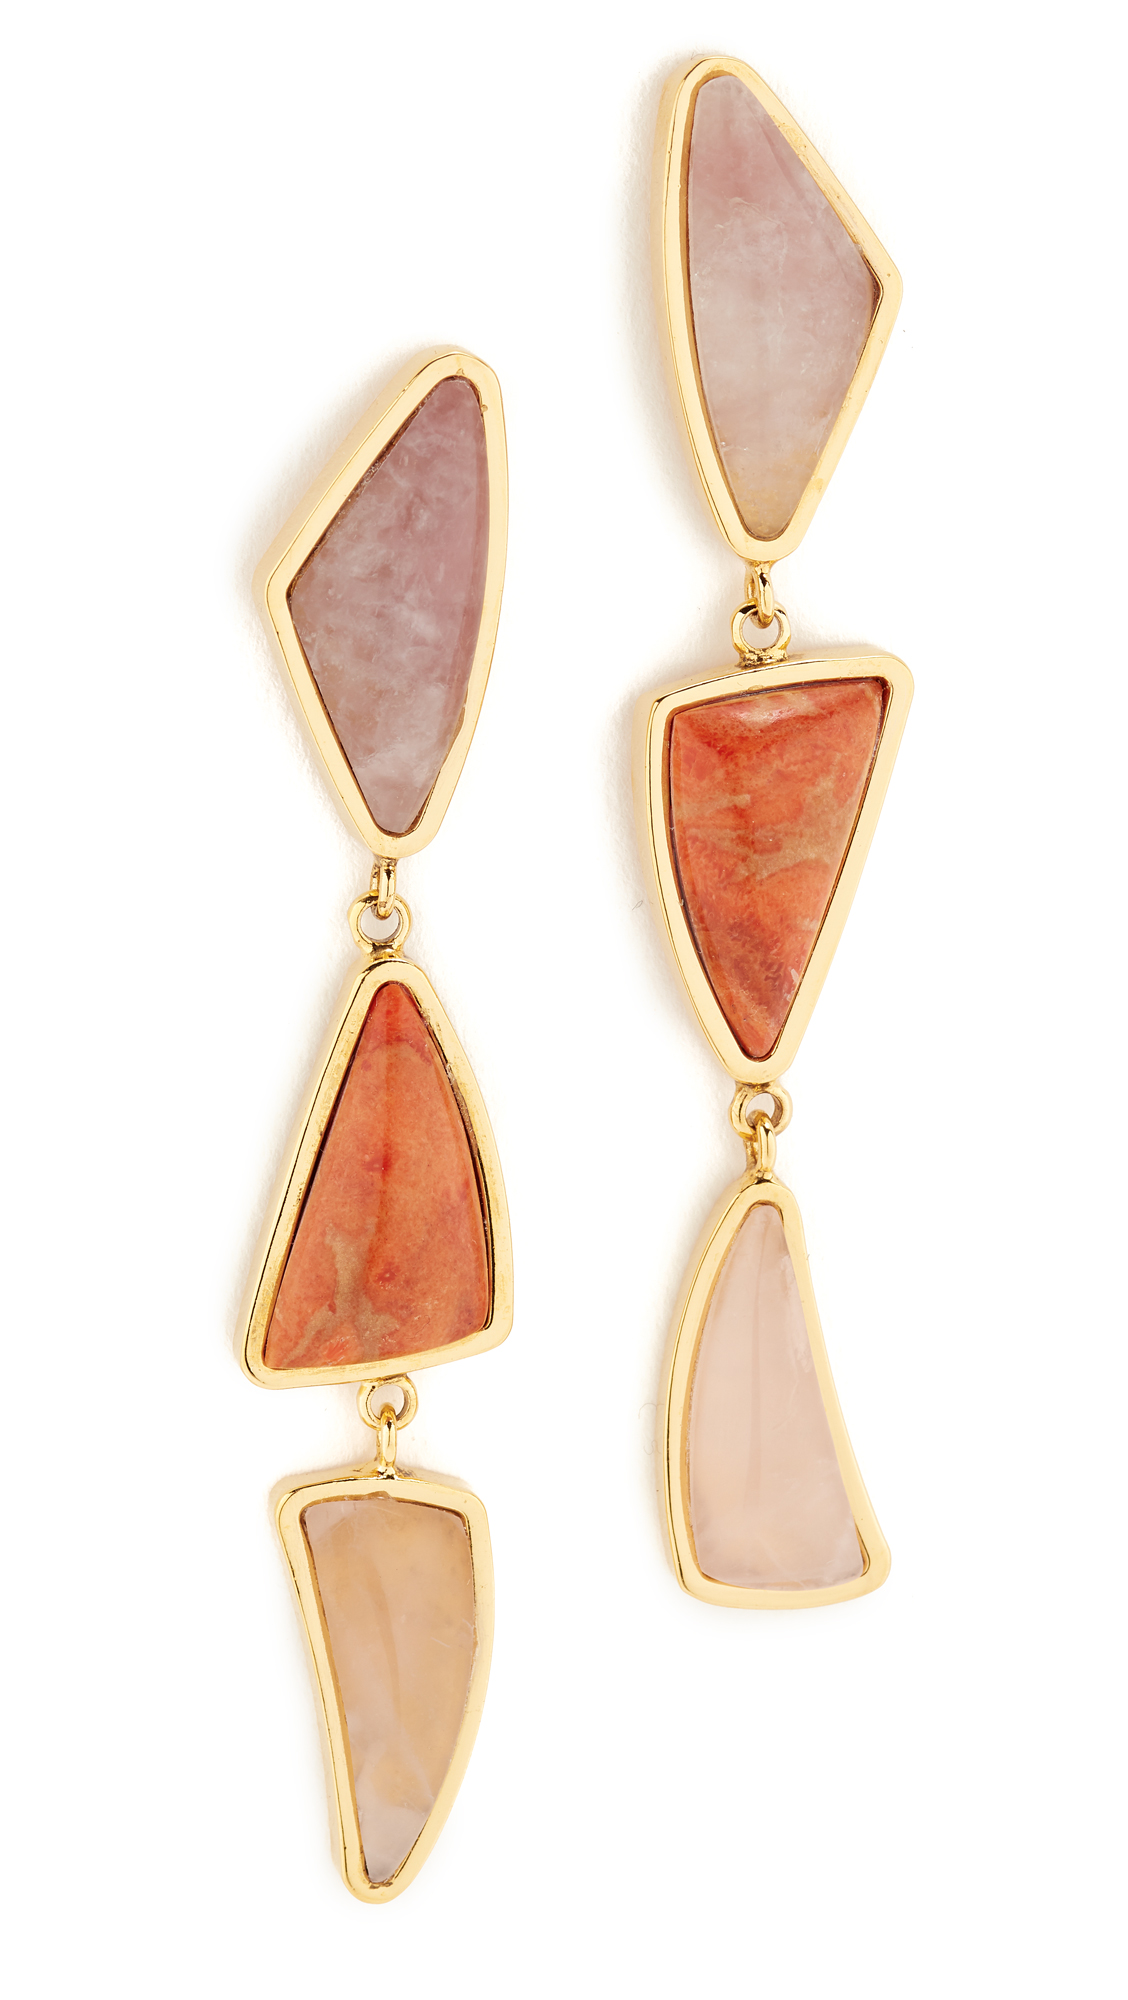 Lizzie Fortunato Prehistoric Earrings - Gold/Sunset